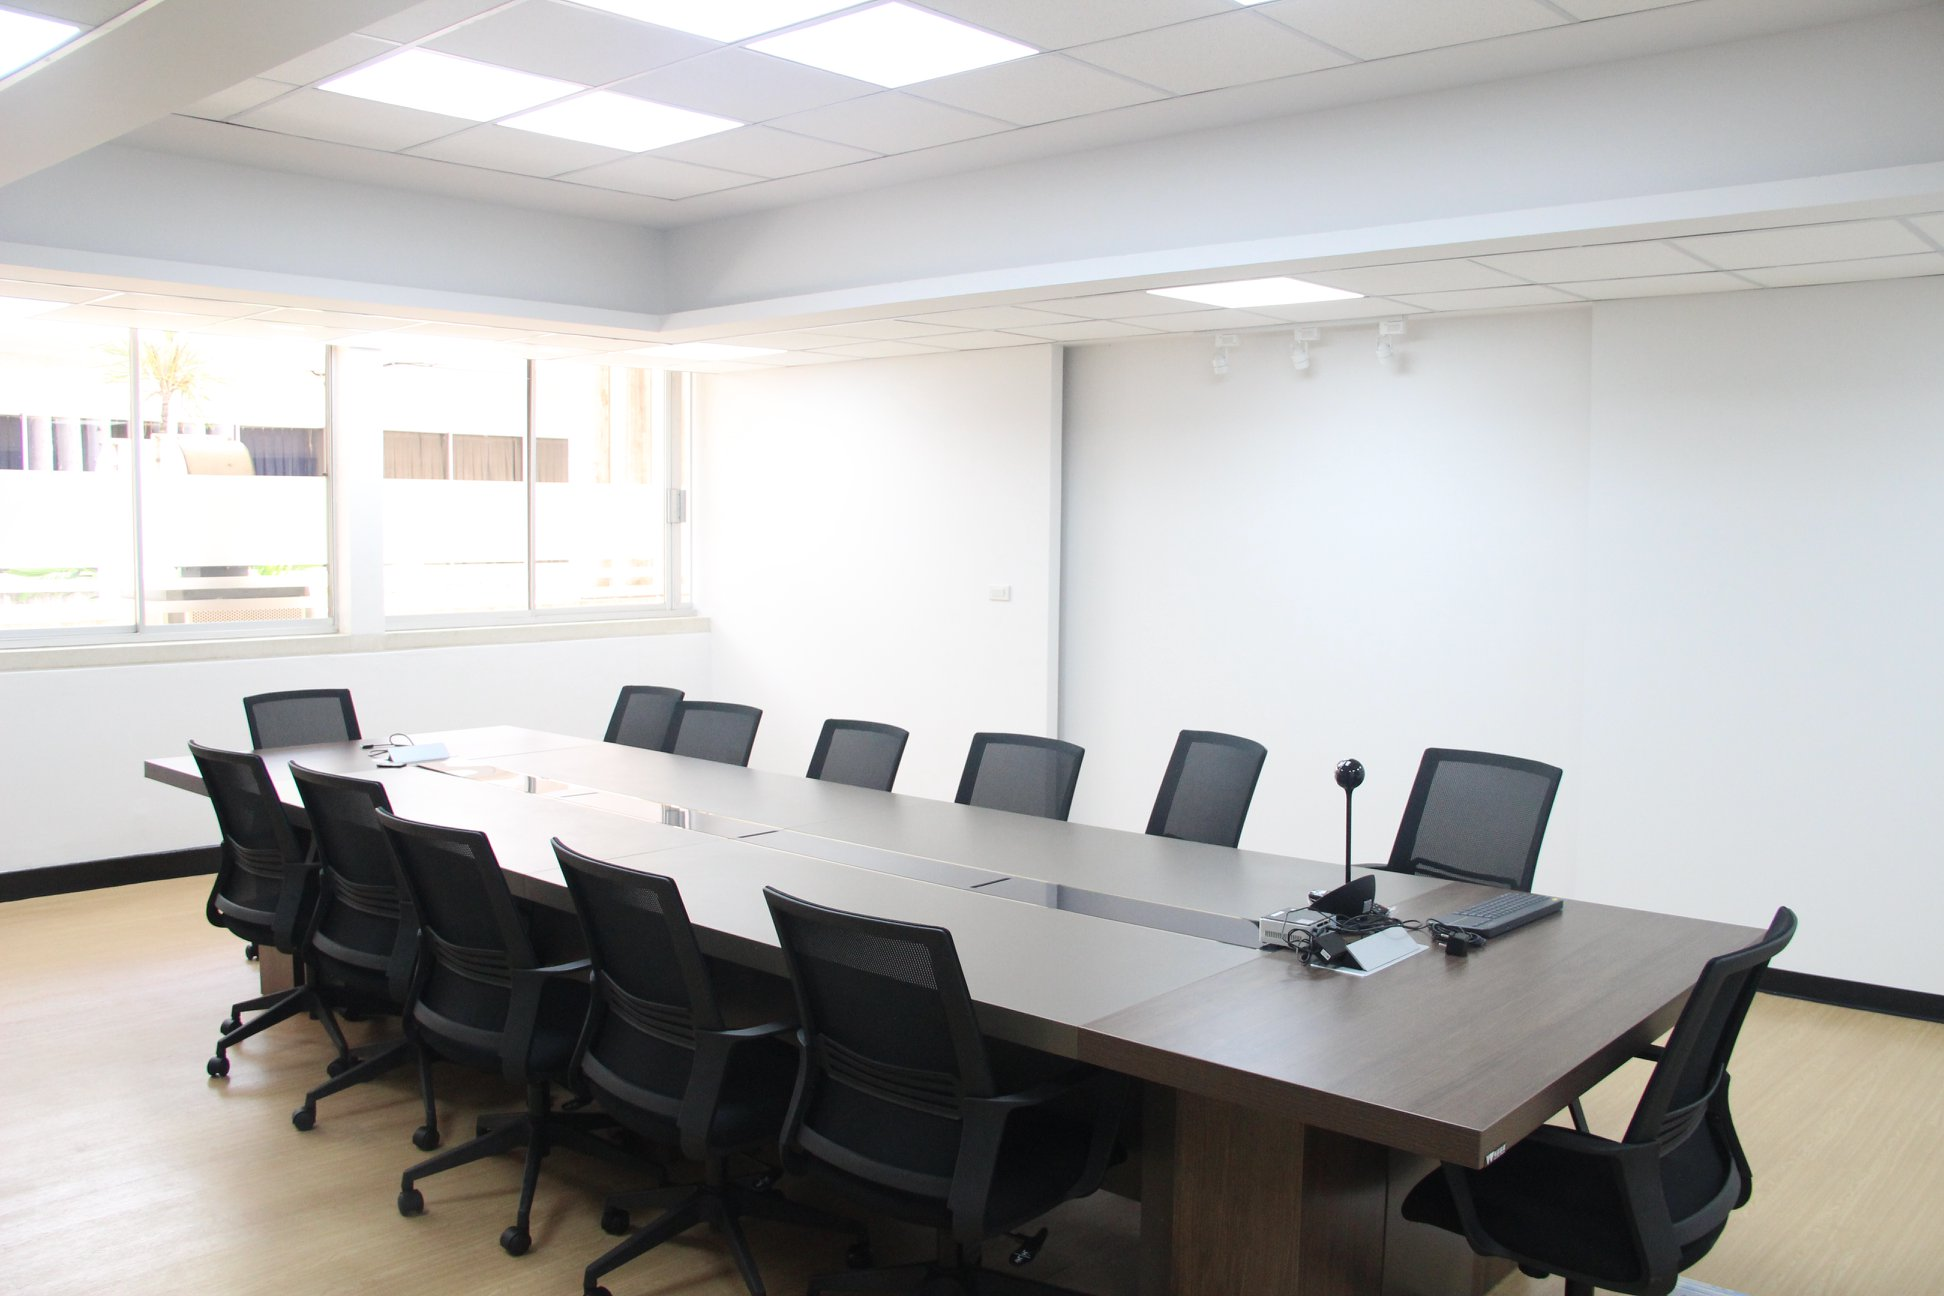 Conference Room - Remote Sensing and GIS